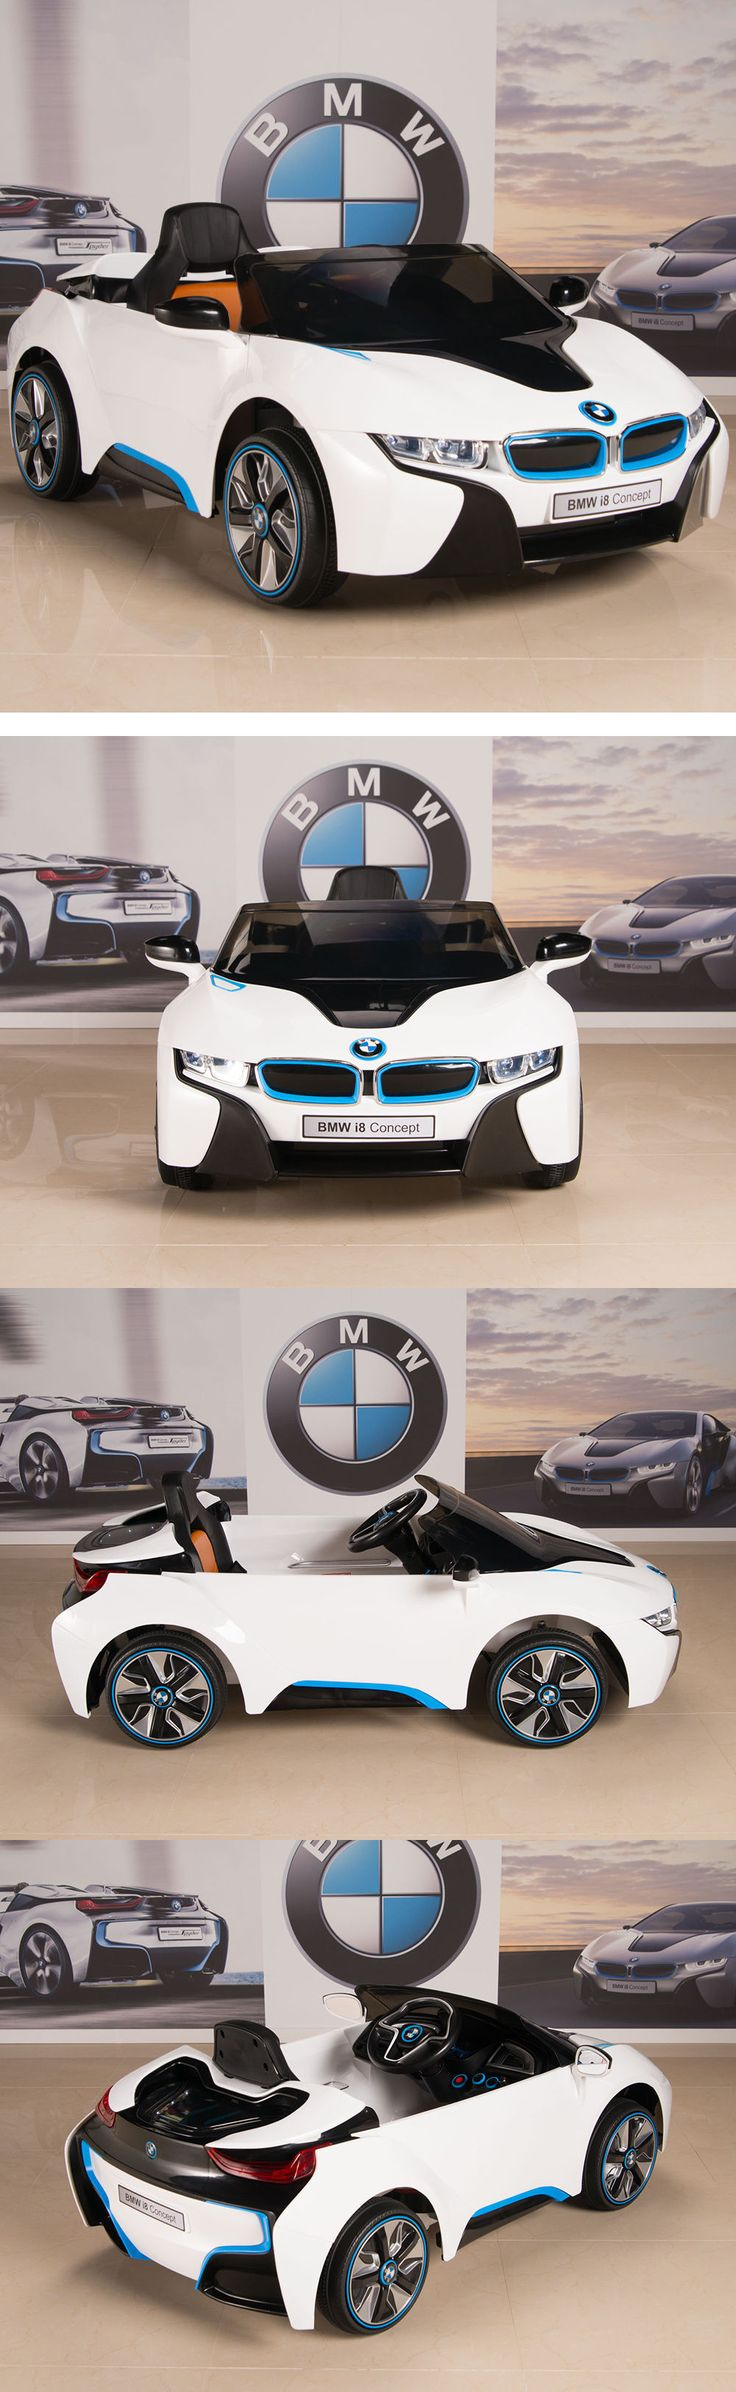 Ride On Toys and Accessories 145944: Bmw I8 Ride On Kids Power Wheels Car Rc Remote 12V White W Blue And Black Trim -> BUY IT NOW ONLY: $289 on eBay!